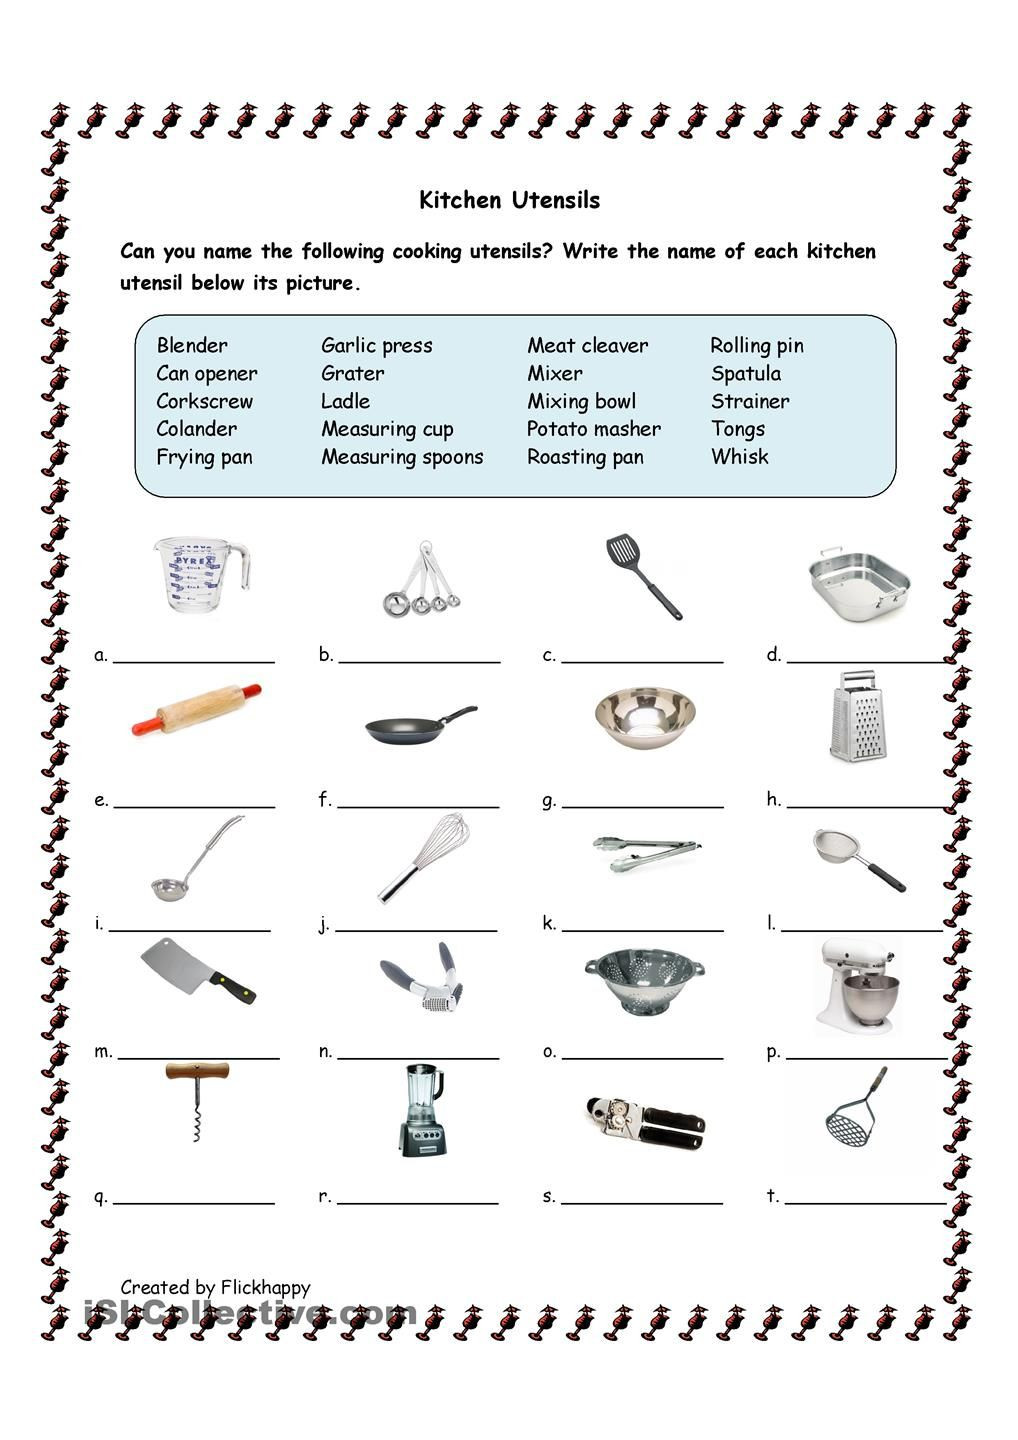 Economics Worksheets for 3rd Grade Kitchen Utensils with Life Skills Classroom Cooking